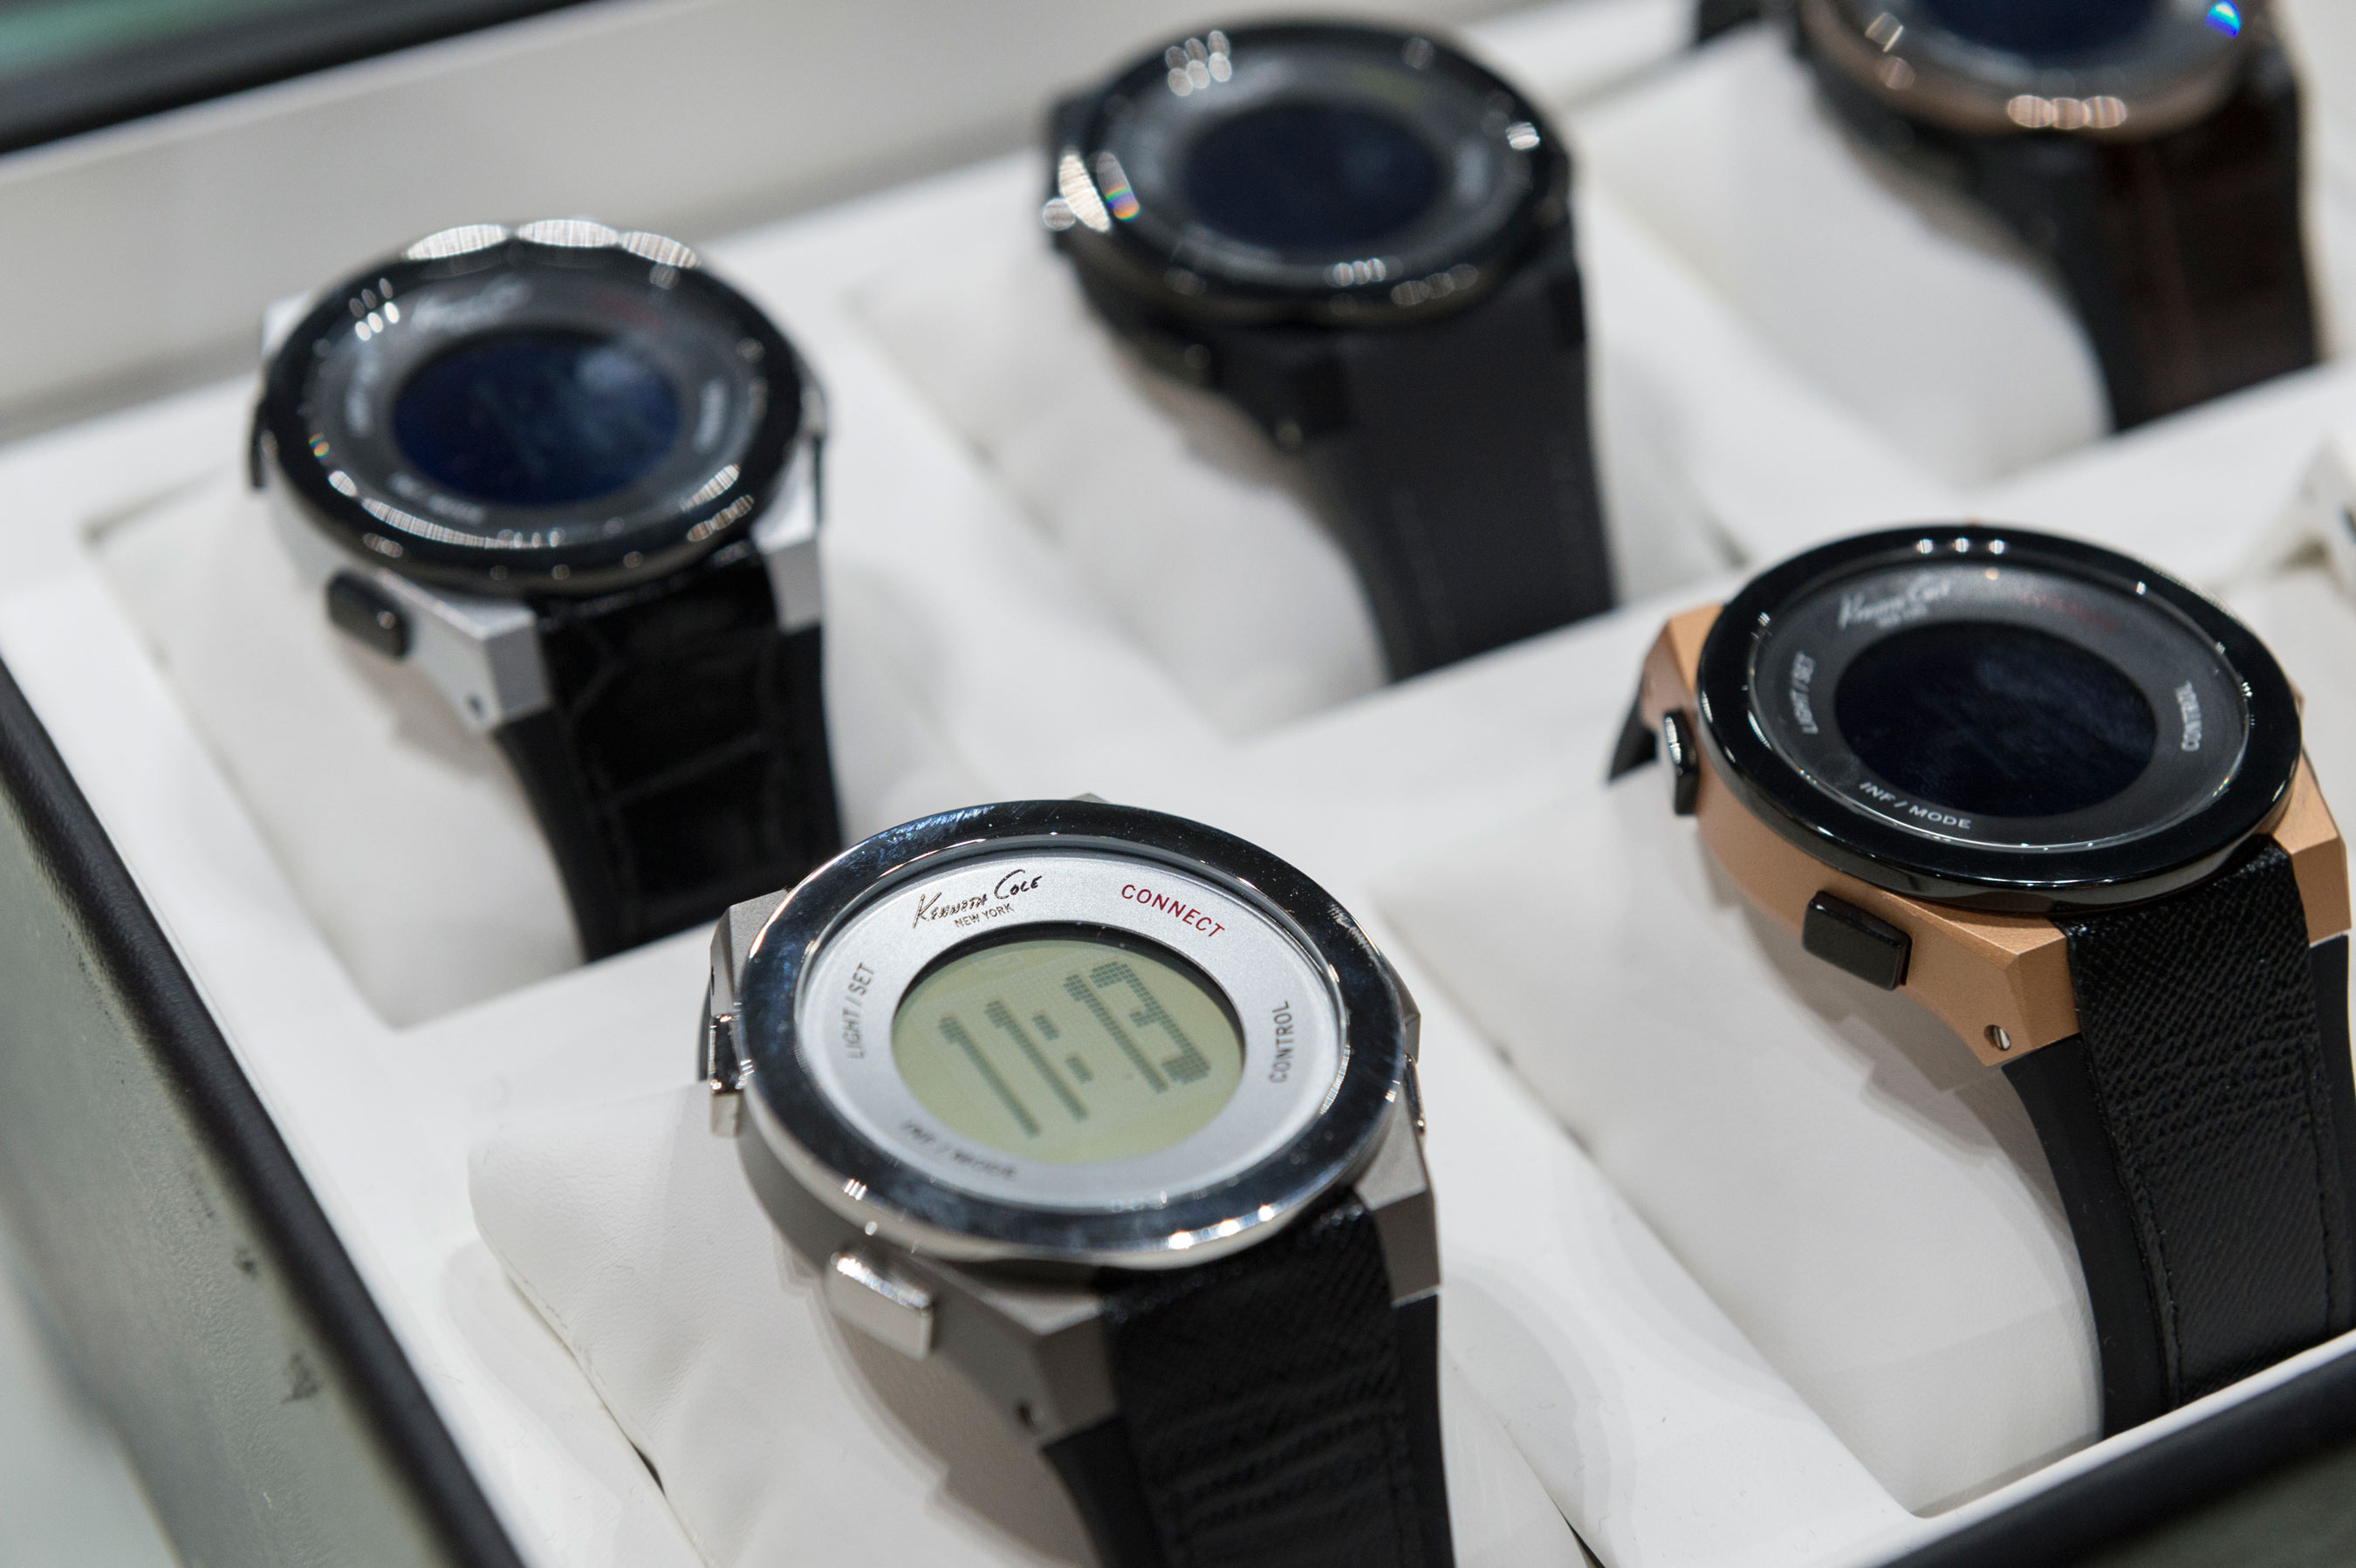 The line of Kenneth Cole Connect� smart watches includes 12 styles for both men and women. Kenneth Cole is one of the first fashion brands to enter the market.